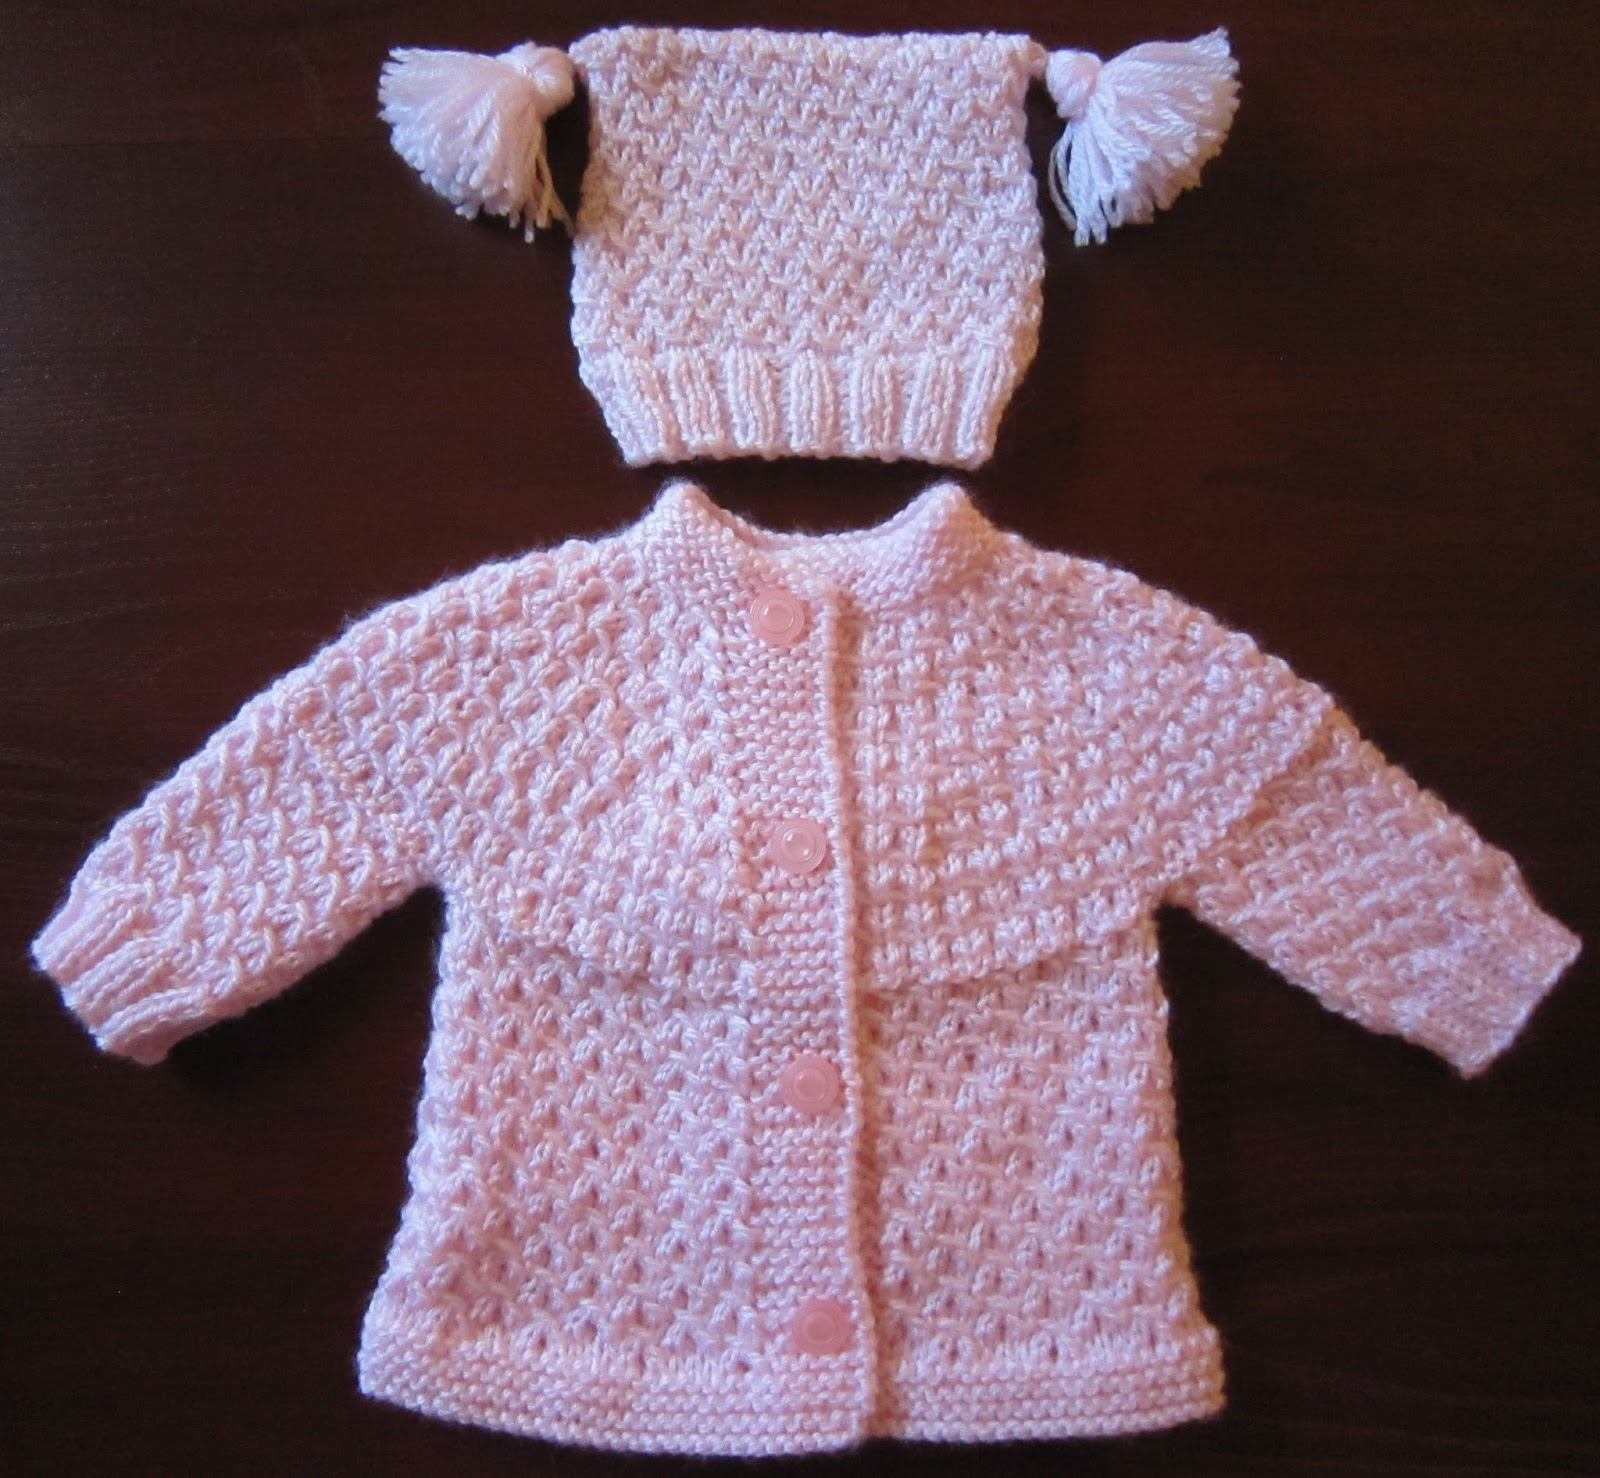 Preemie Knitting Patterns Free : Sea Trail Grandmas: FREE PREEMIE KNIT SWEATER AND HAT ...